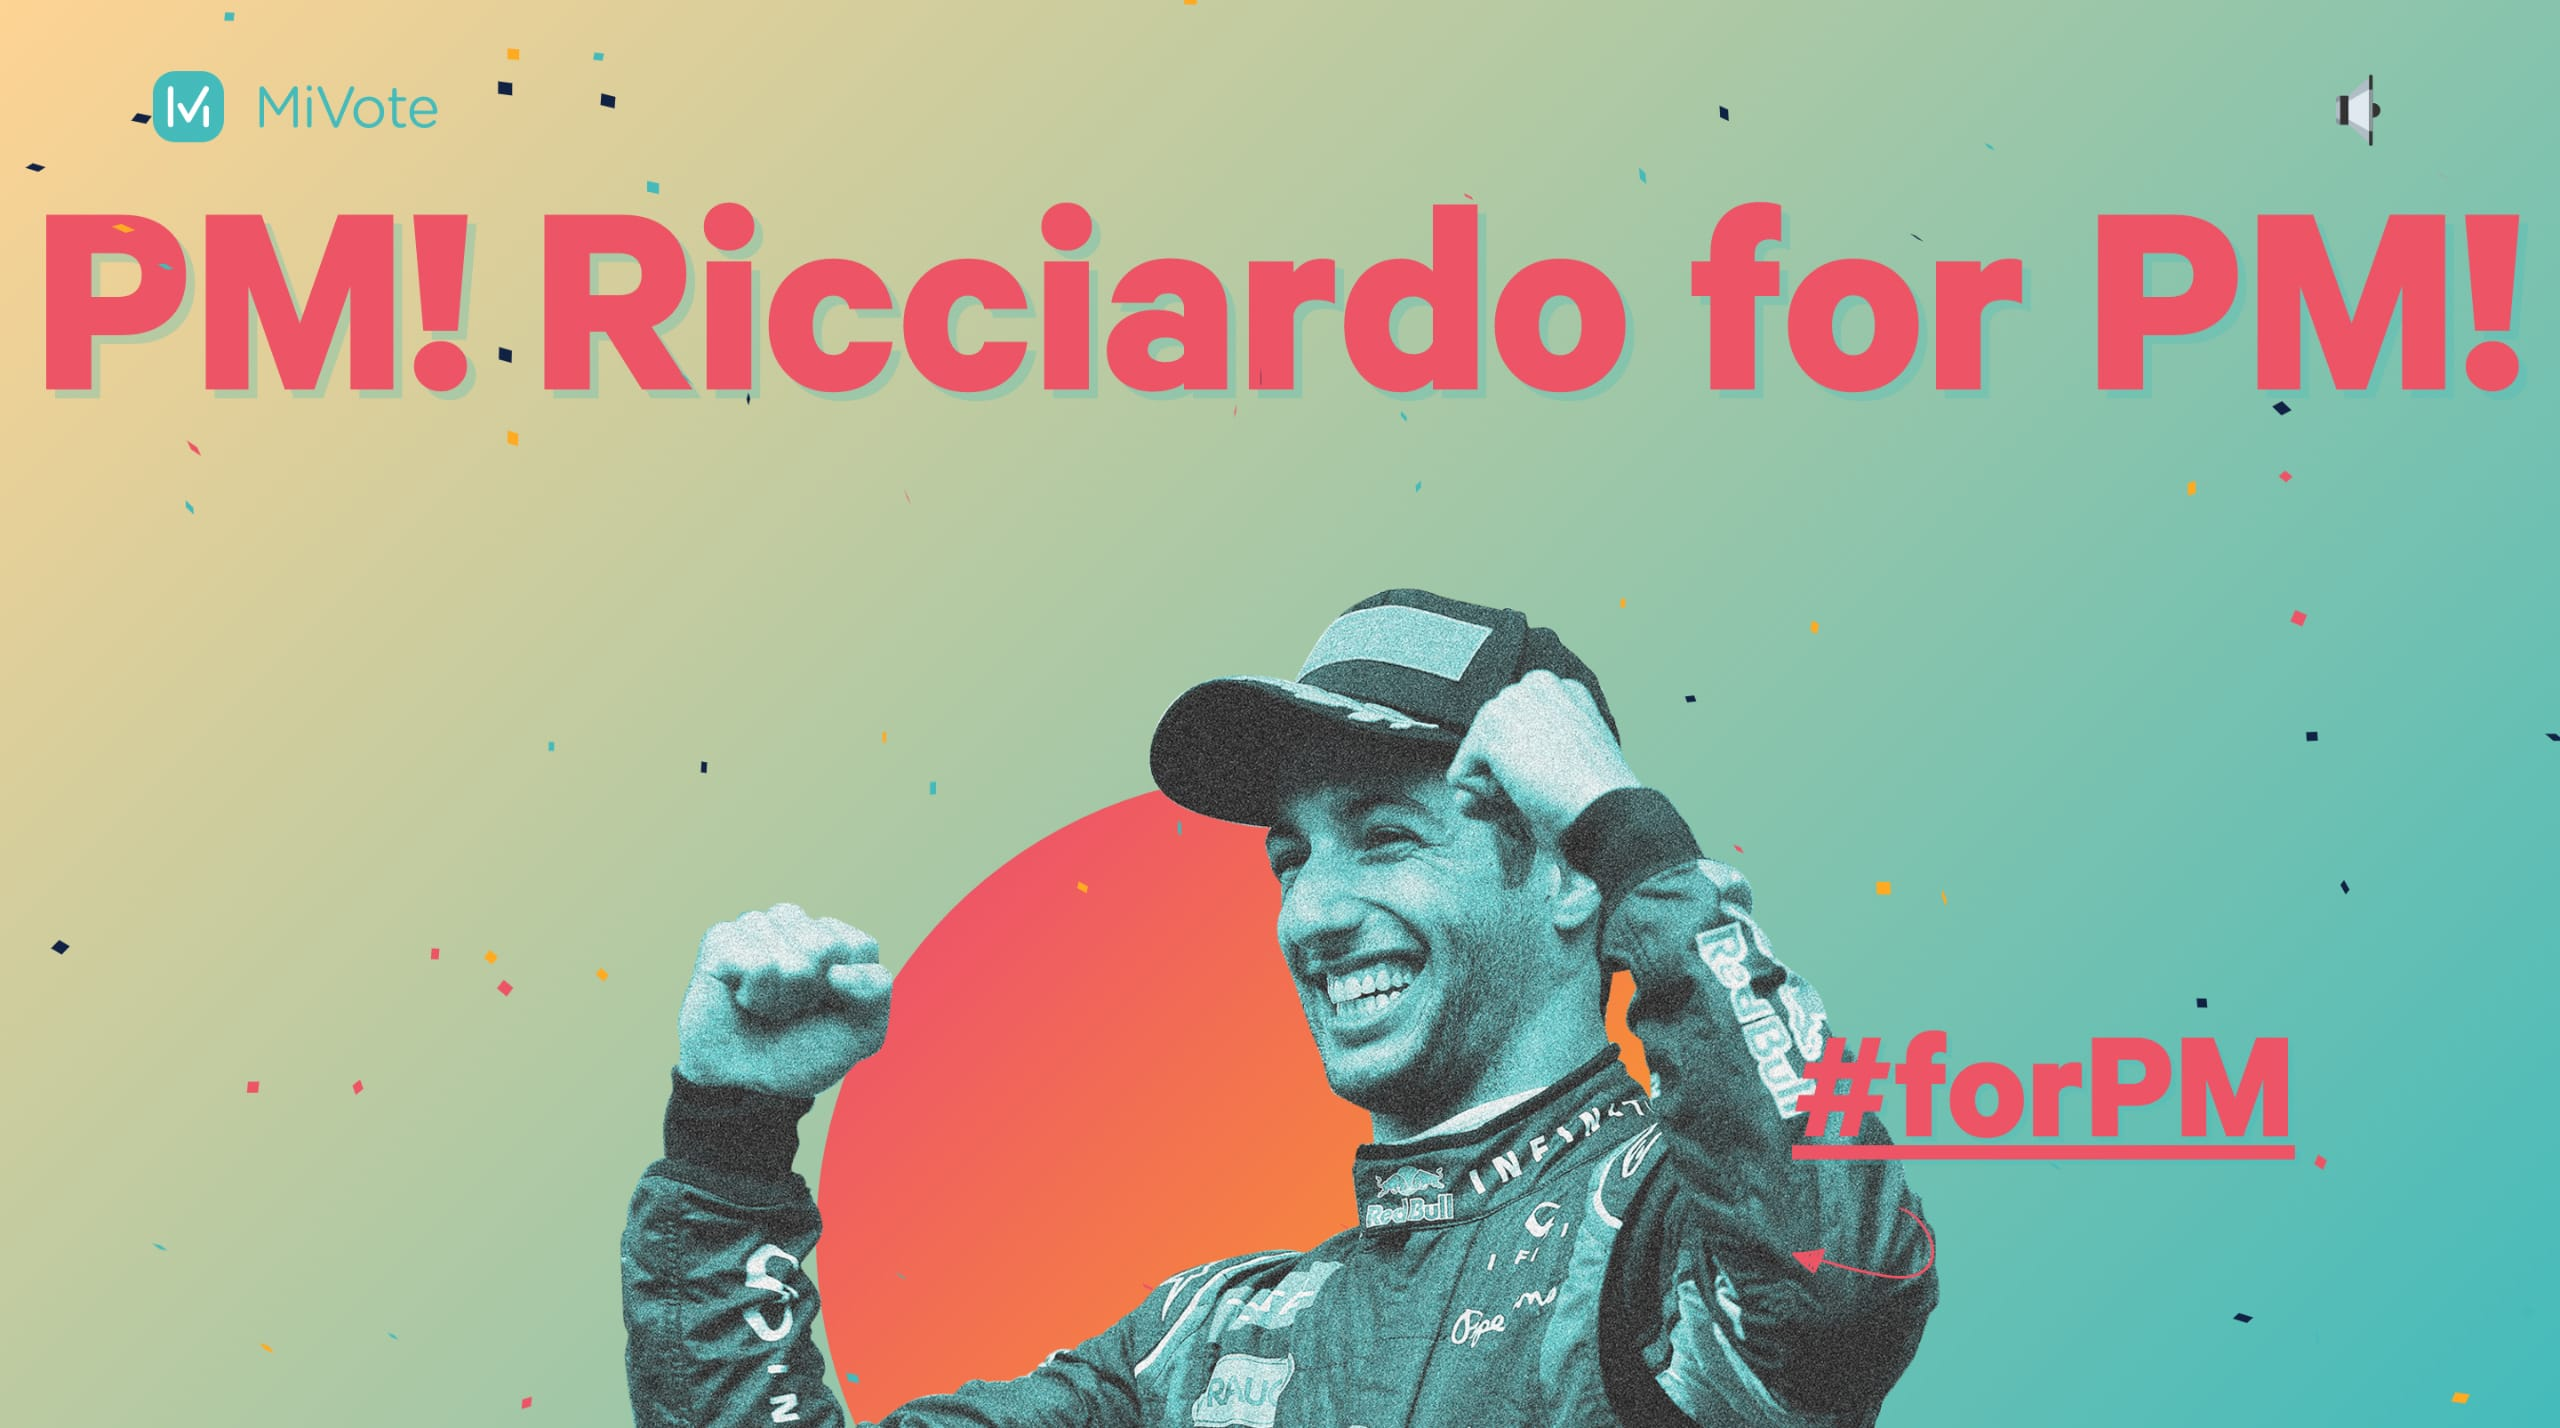 Ricciardo for PM Website Screenshot